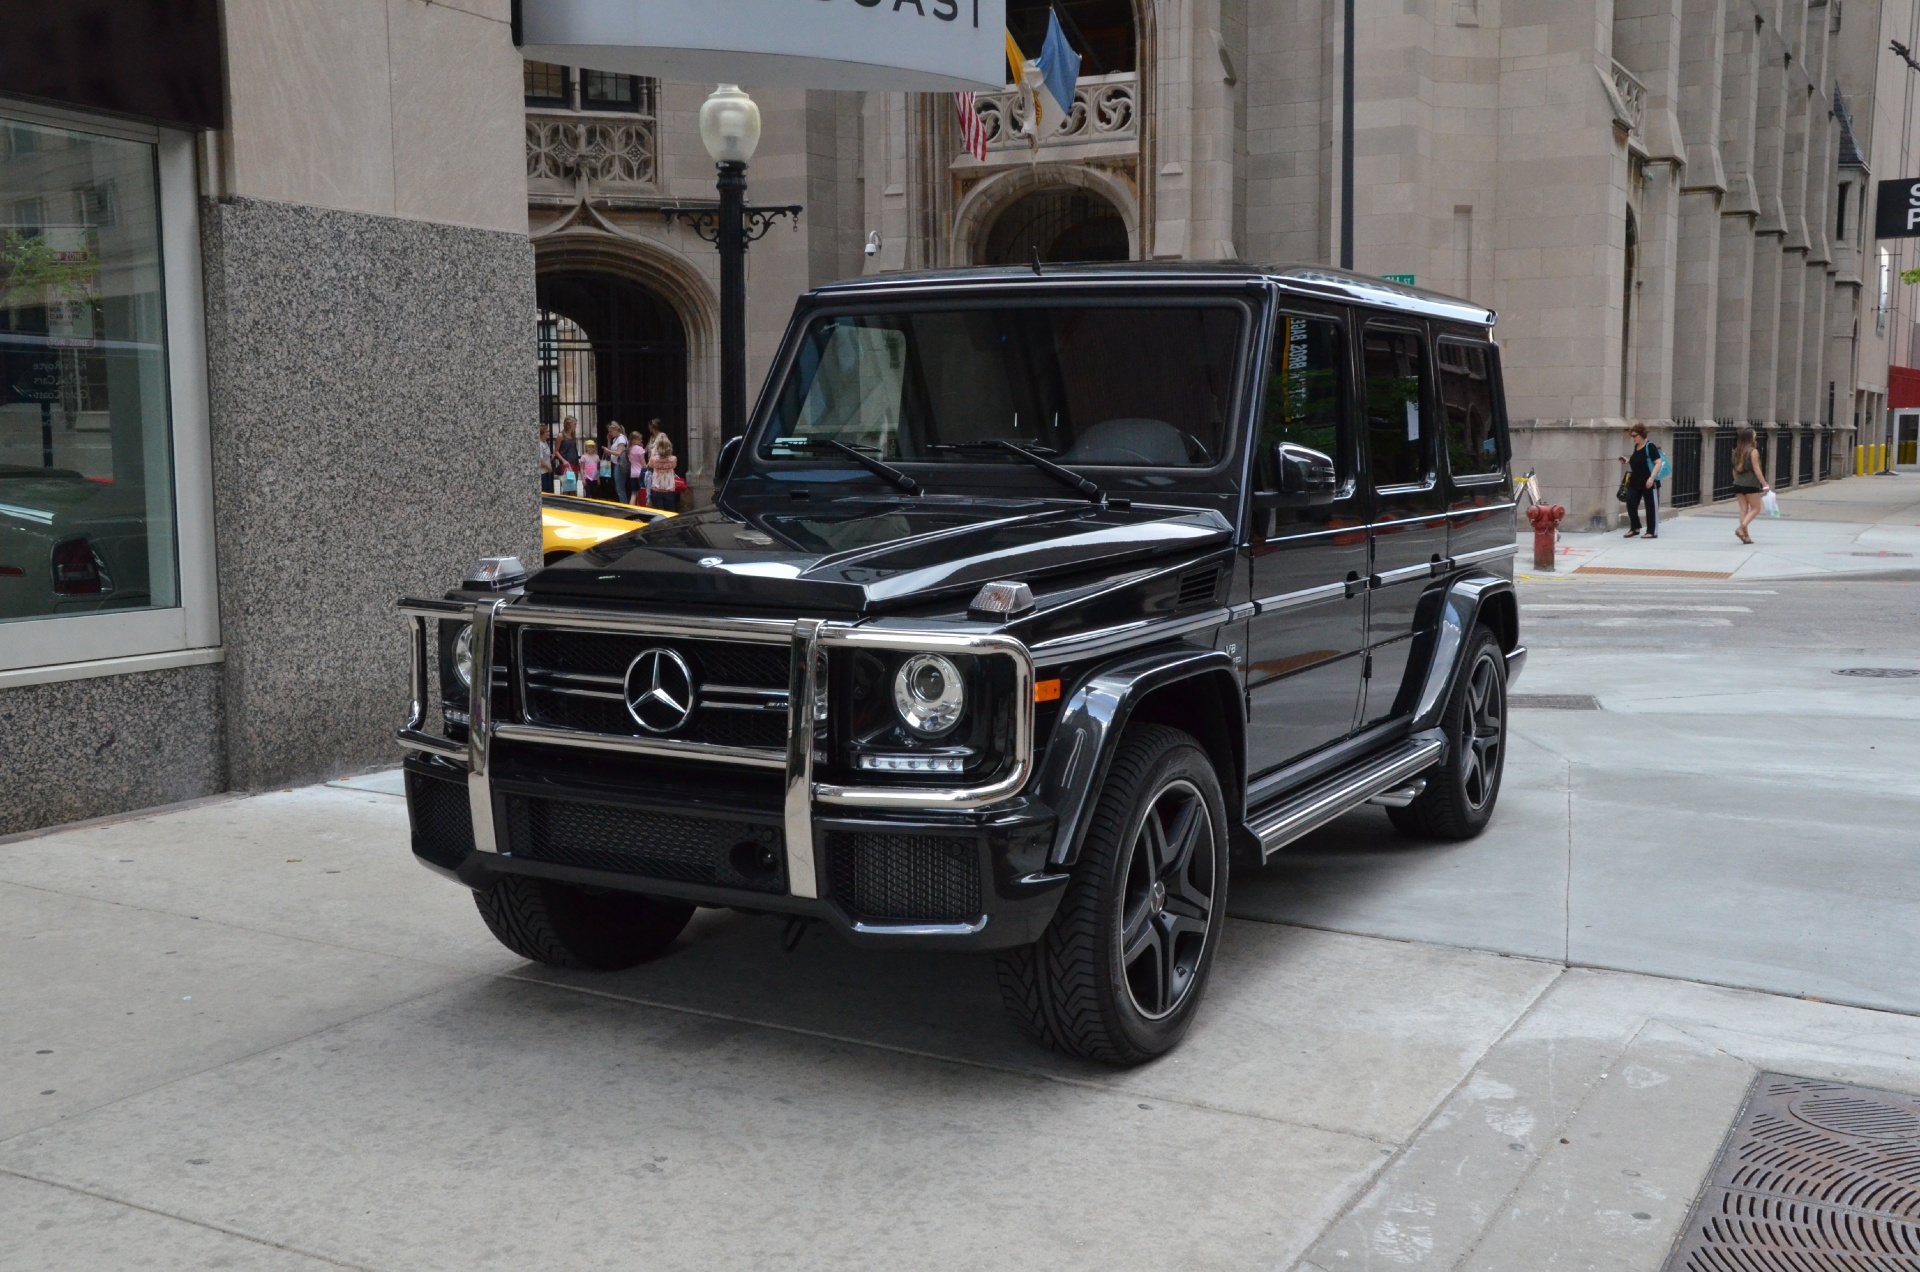 2015 mercedes benz g class g63 amg stock gc1723 s for for Mercedes benz g63 amg for sale